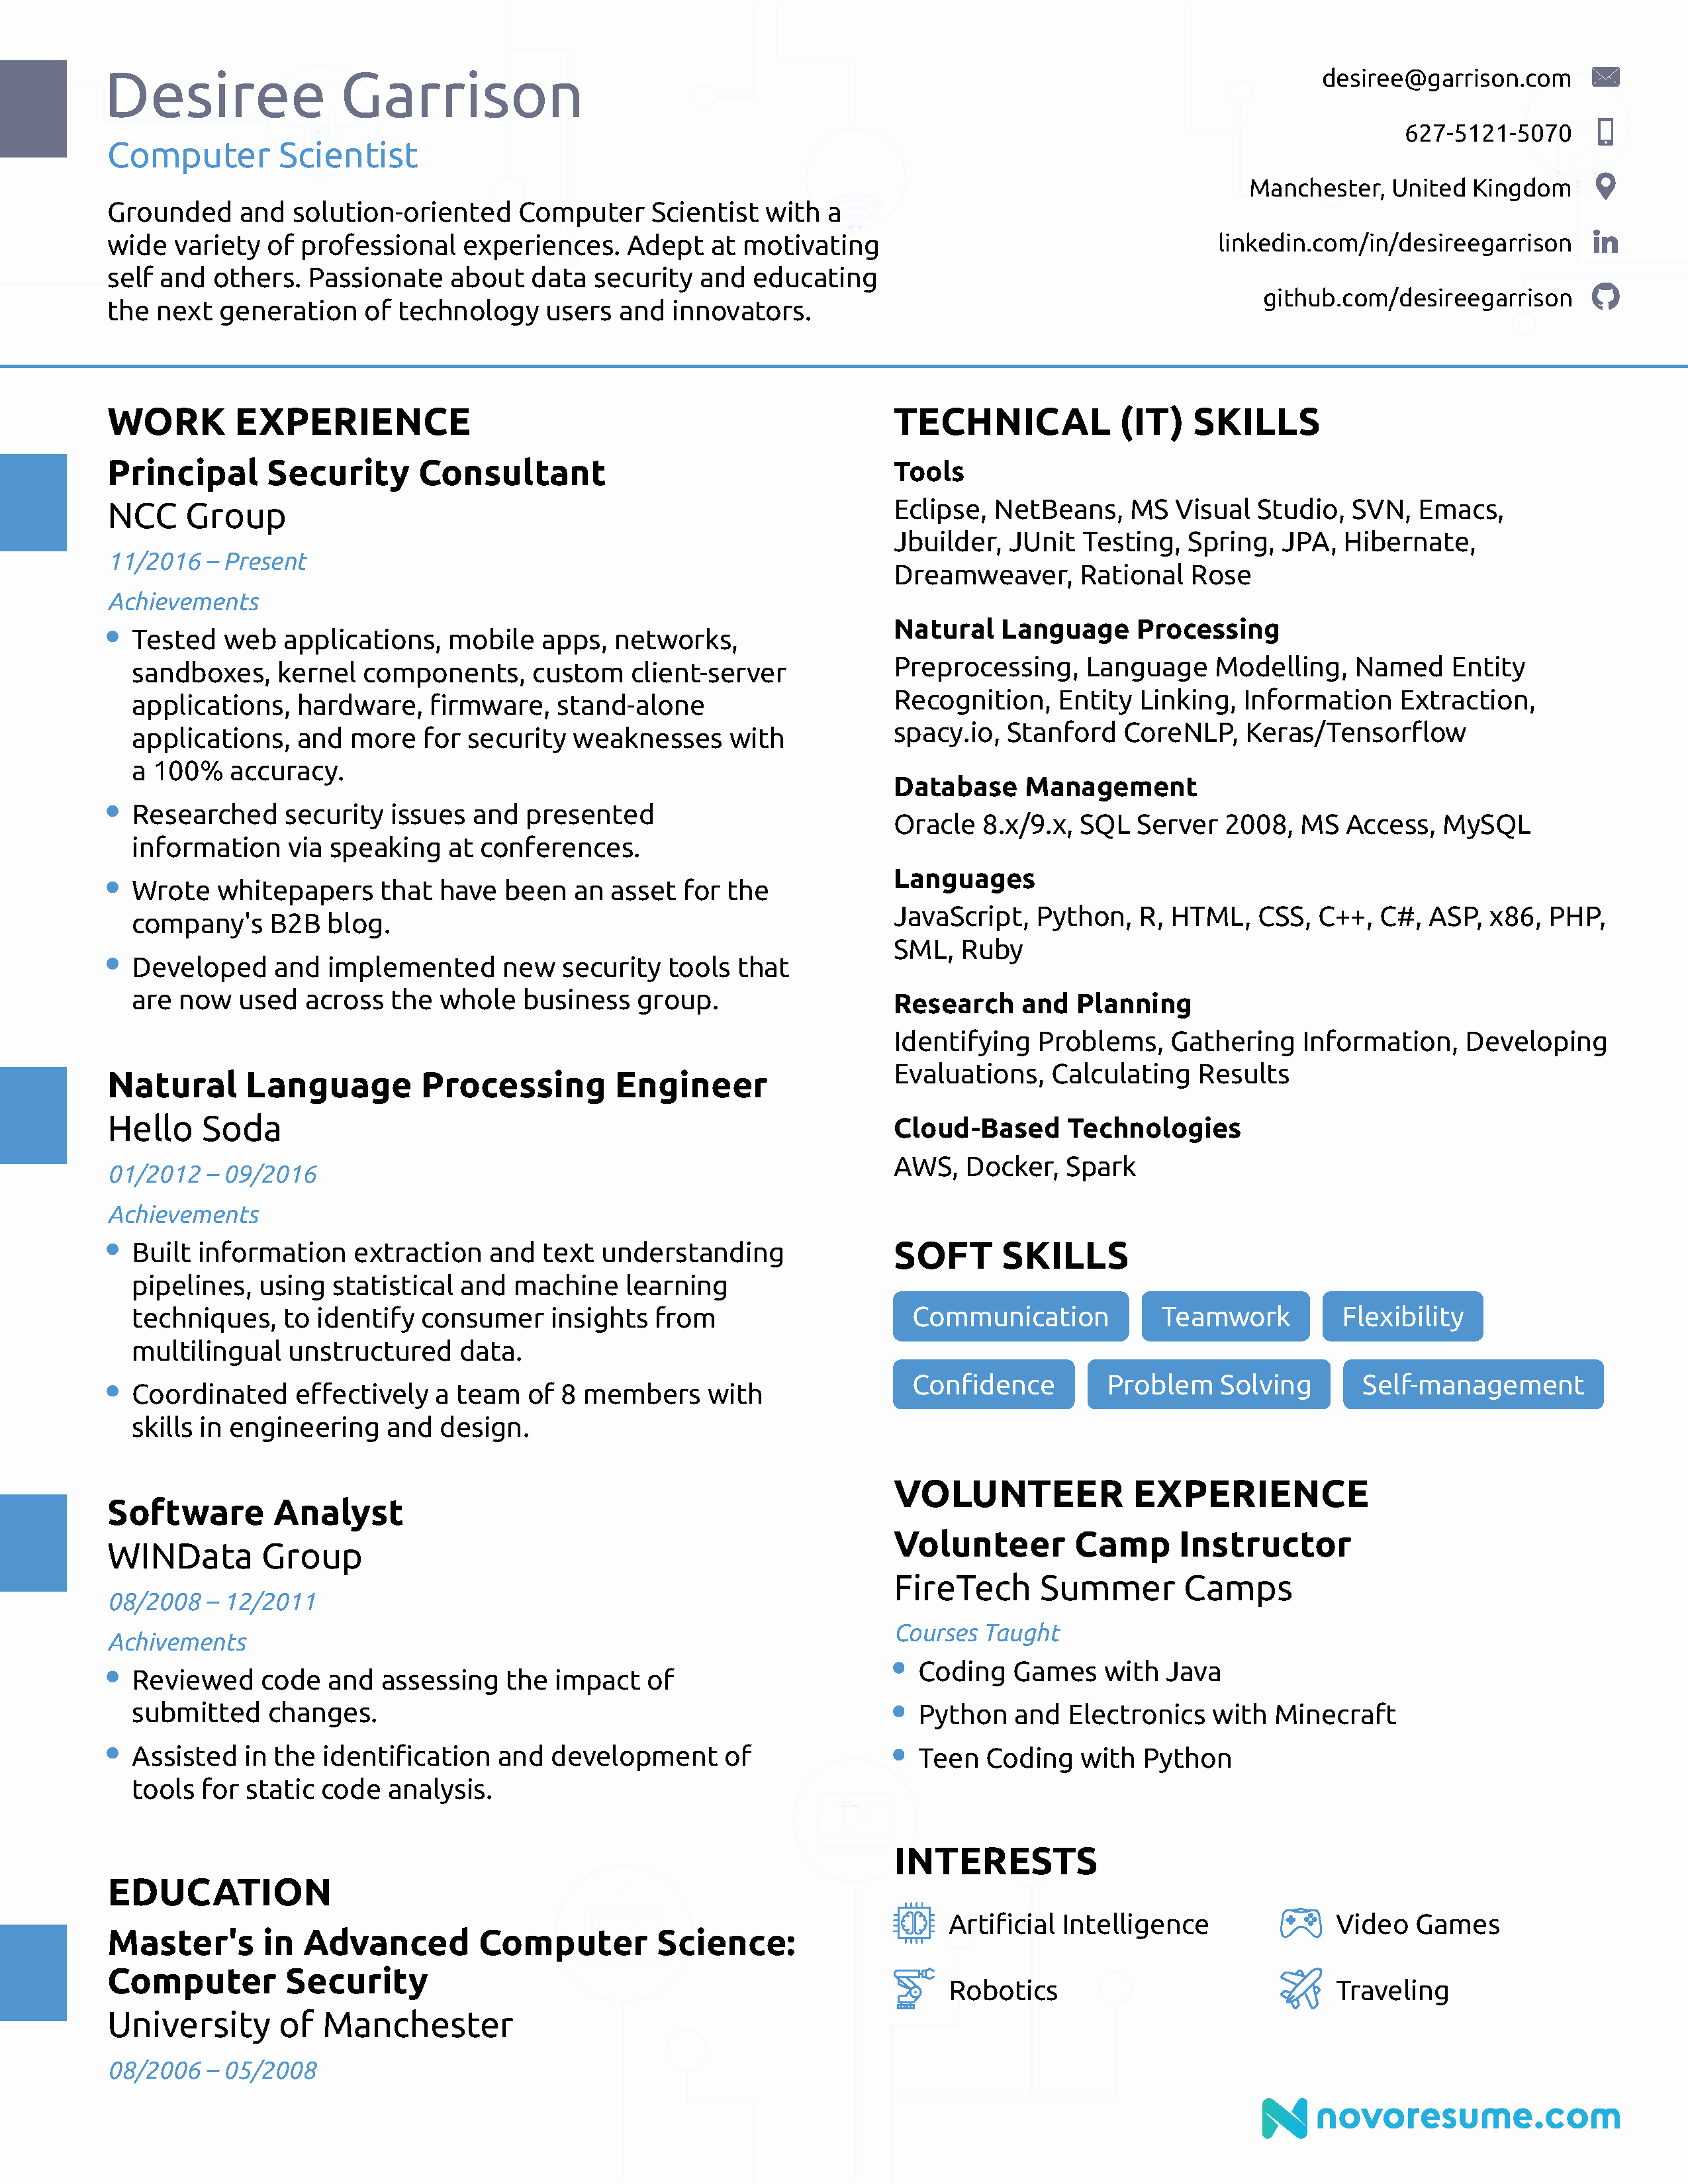 Computer Science Student Resume Fresh 2018 Resume Examples for Your Job [ Writing Tips]